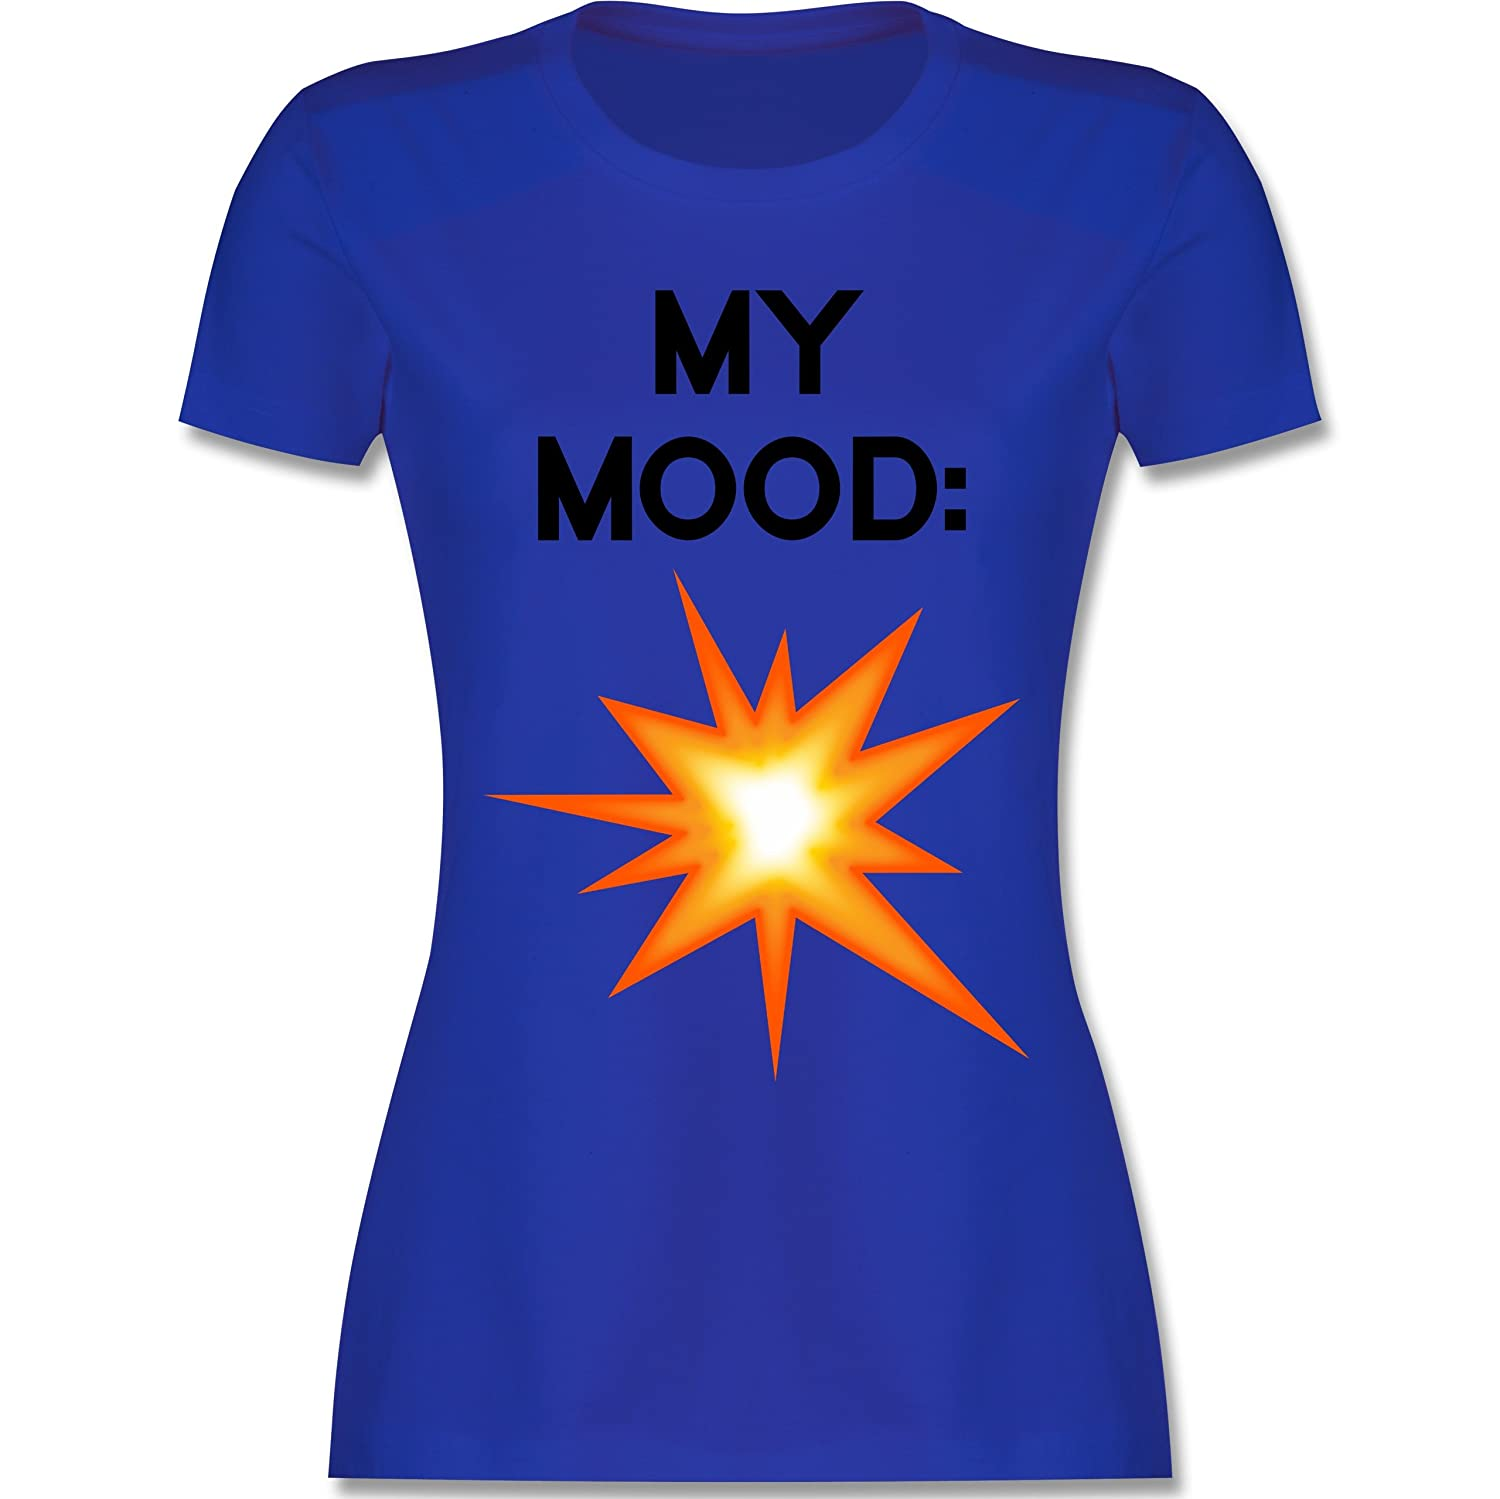 Shirtracer Statement Shirts - My Mood: Explosion - Damen T-Shirt Rundhals:  Shirtracer: Amazon.de: Bekleidung